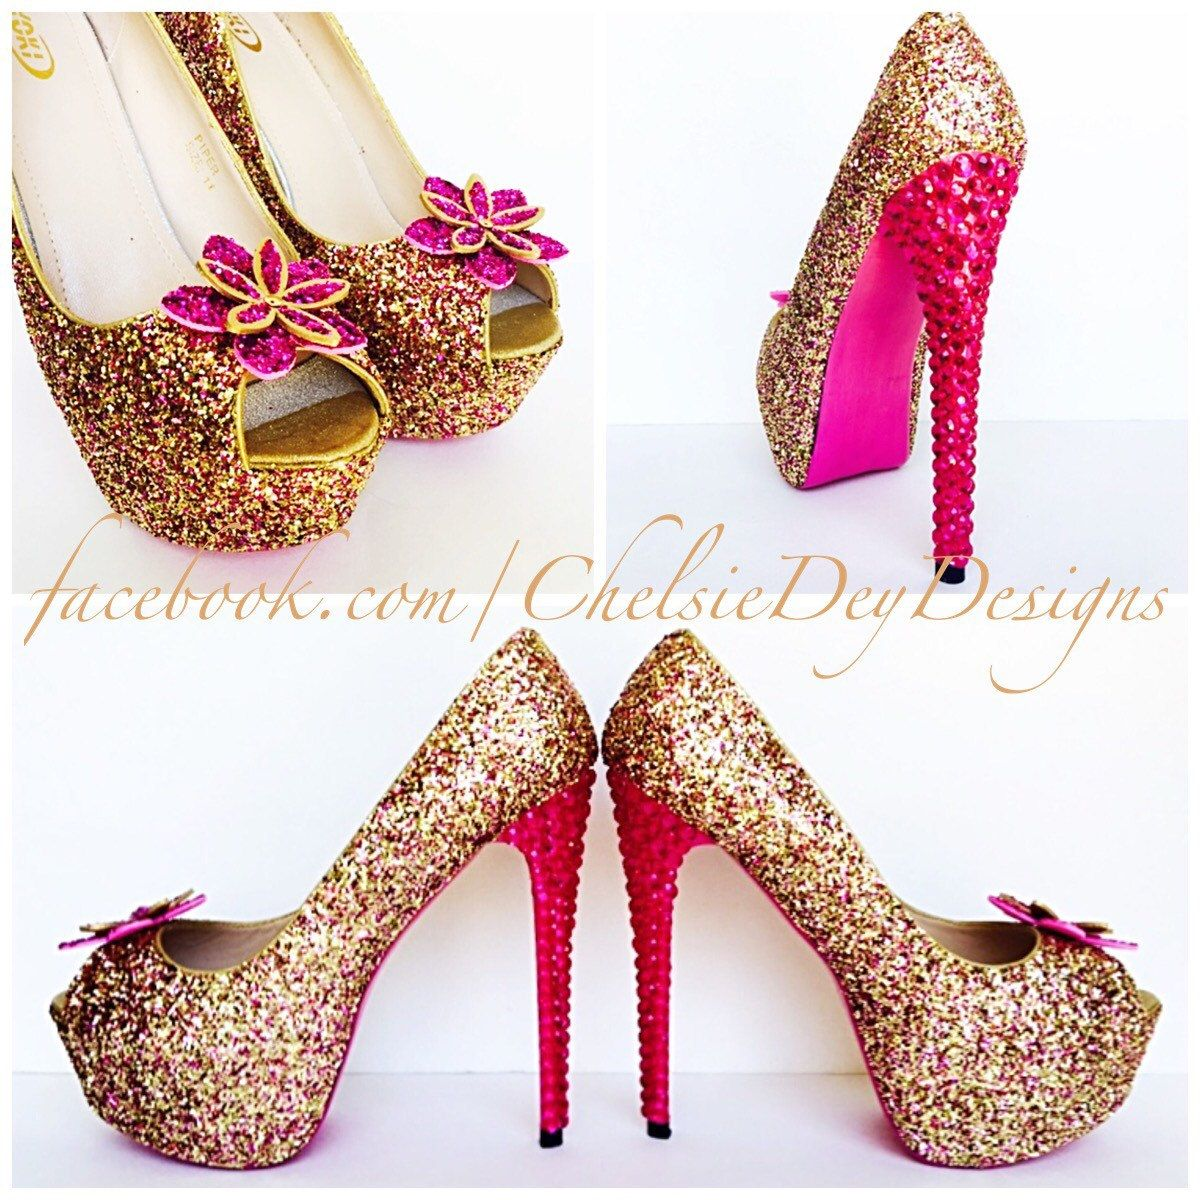 294c5415159 Glitter High Heels - Hot Pink Peep Toe Pumps - Pink and Gold Open ...